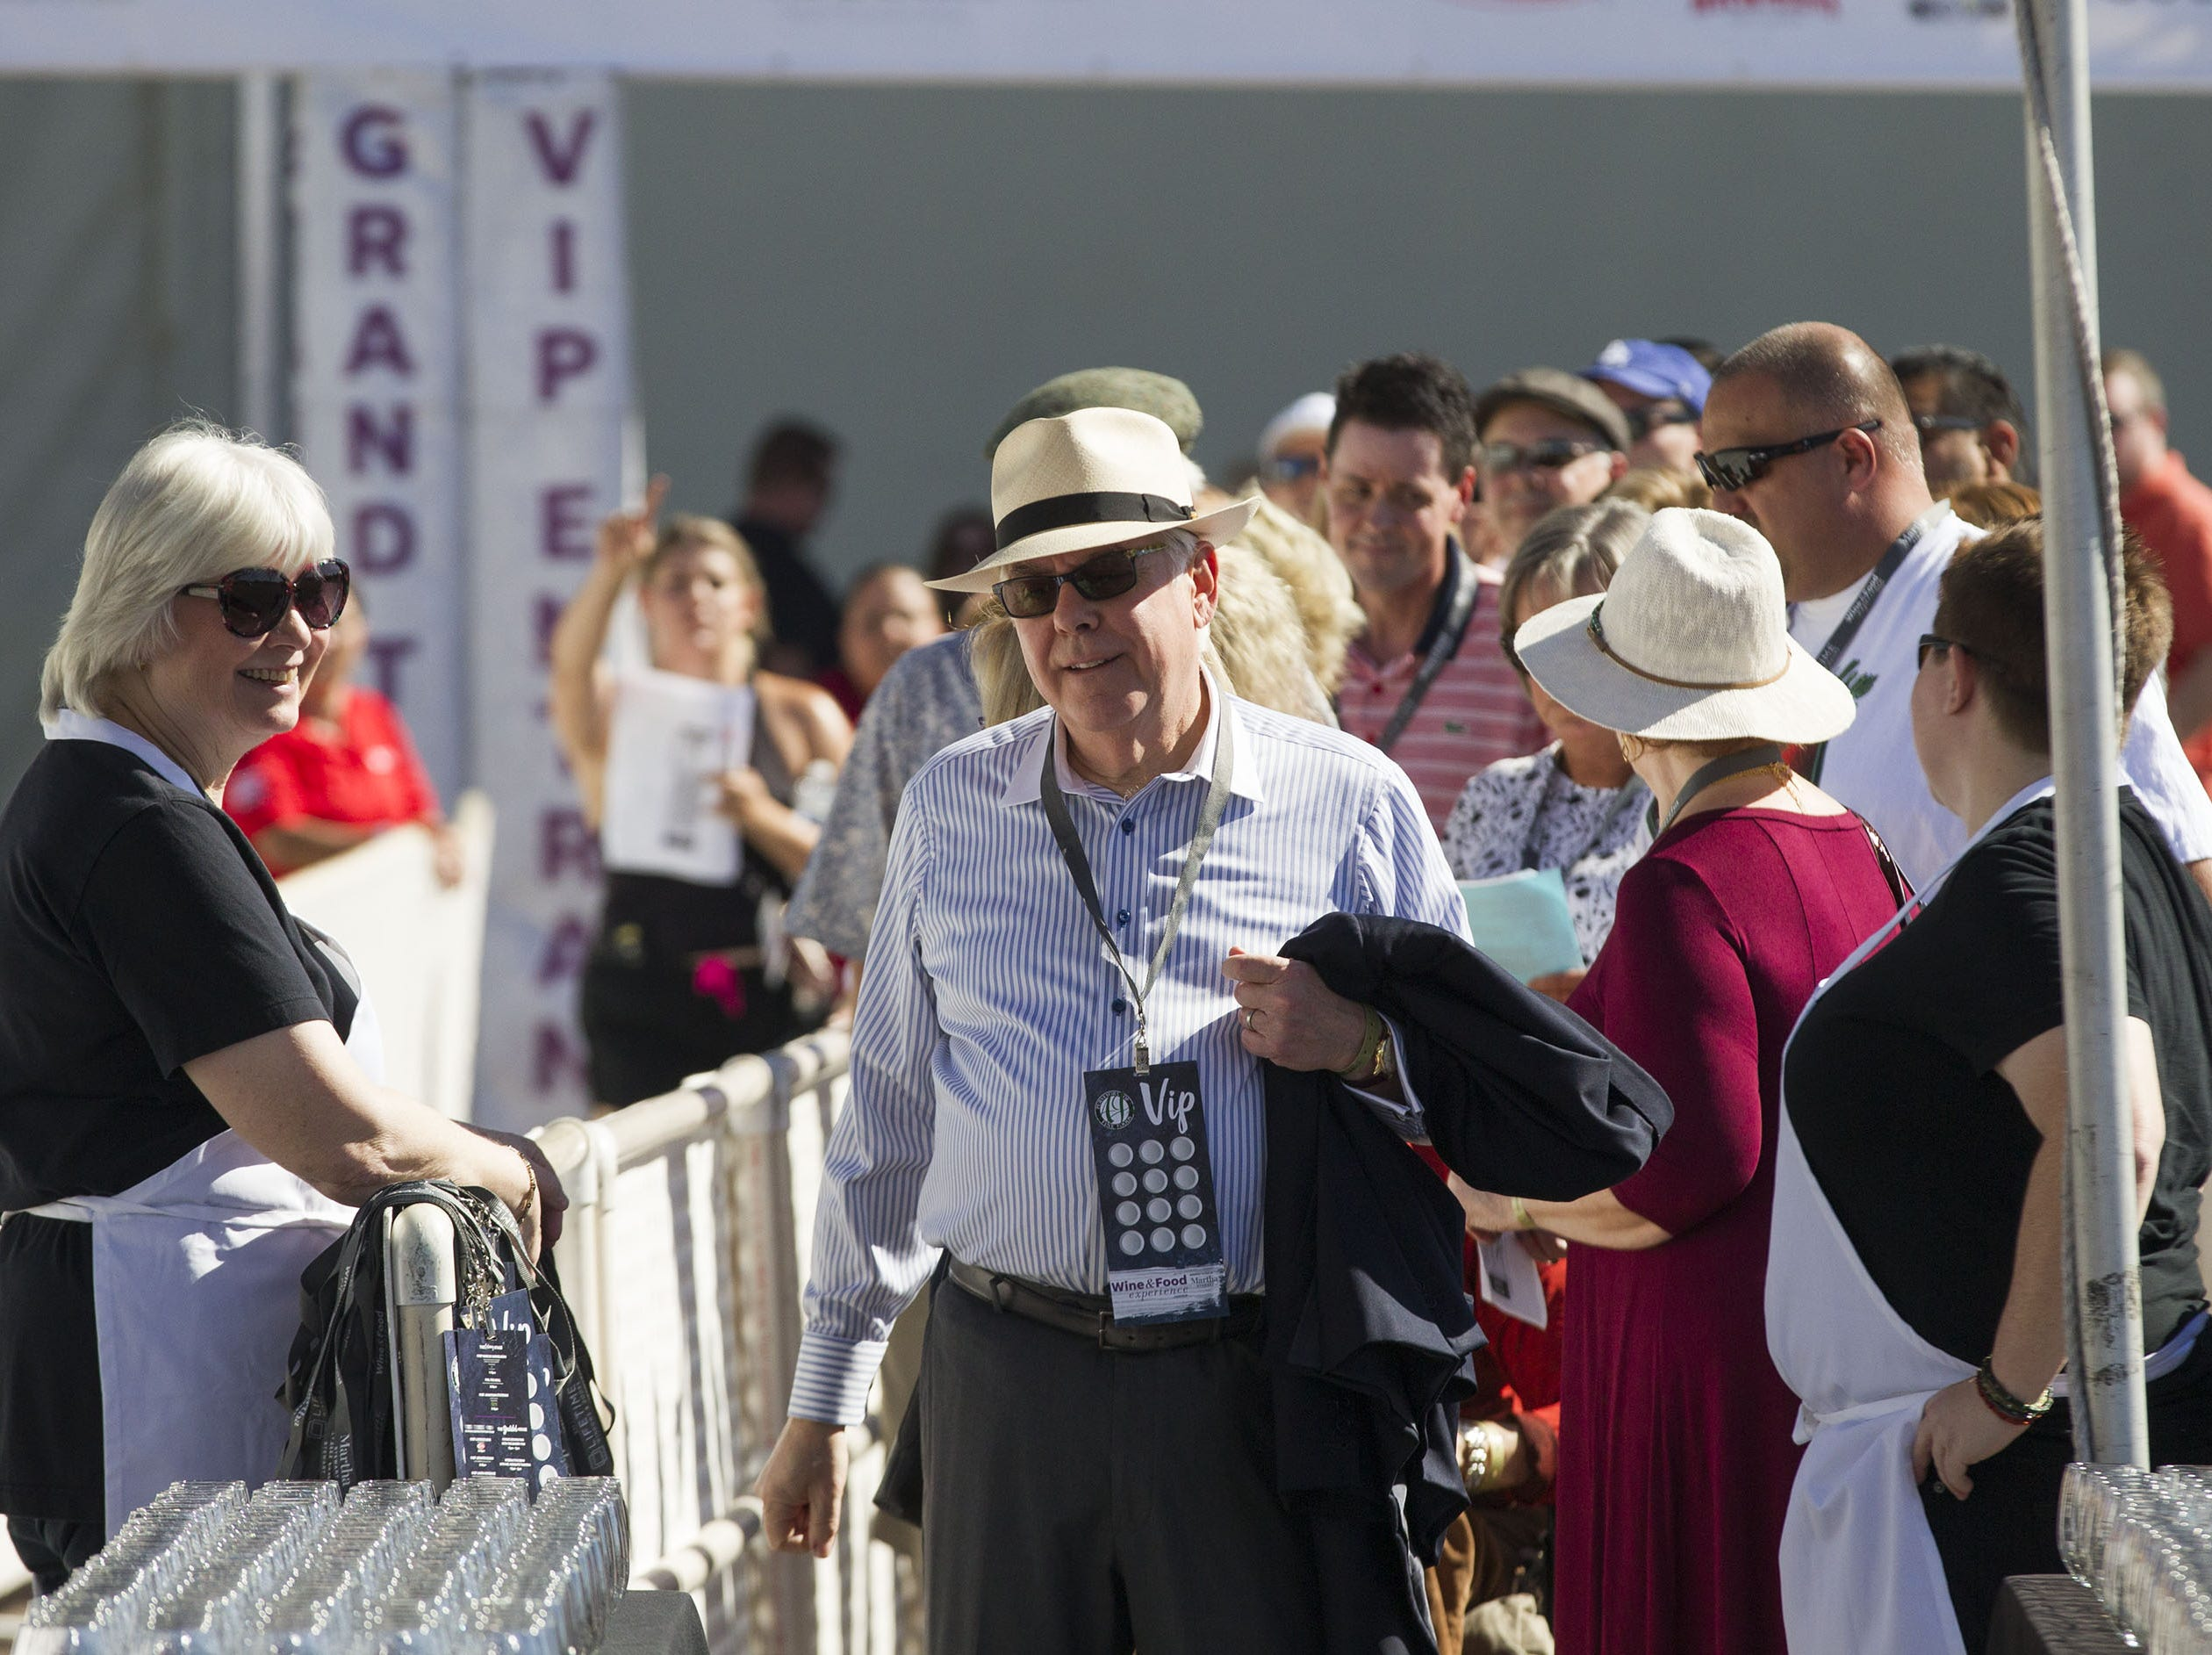 Some of the first food and wine connoisseurs enter the azcentral Wine & Food Experience at WestWorld of Scottsdale, Saturday, Nov. 3, 2018.